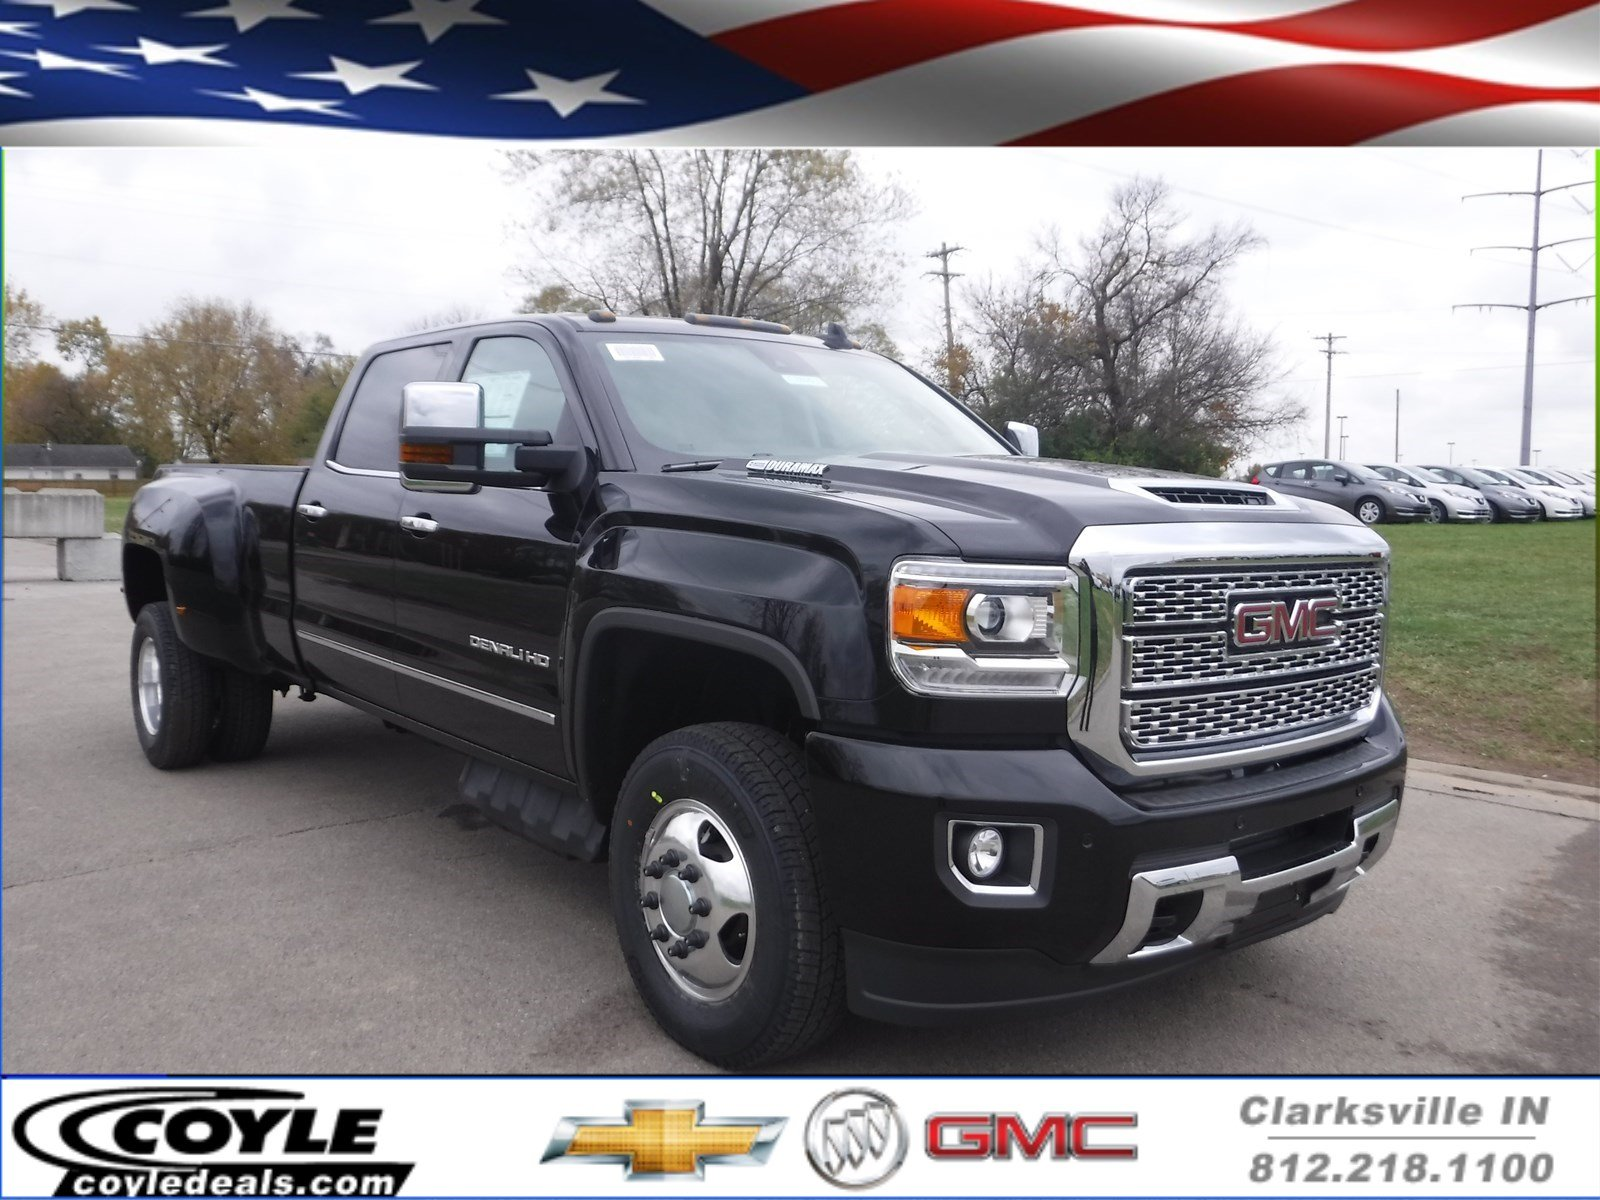 2018 Gmc Denali 3500 Best New Cars For 2018